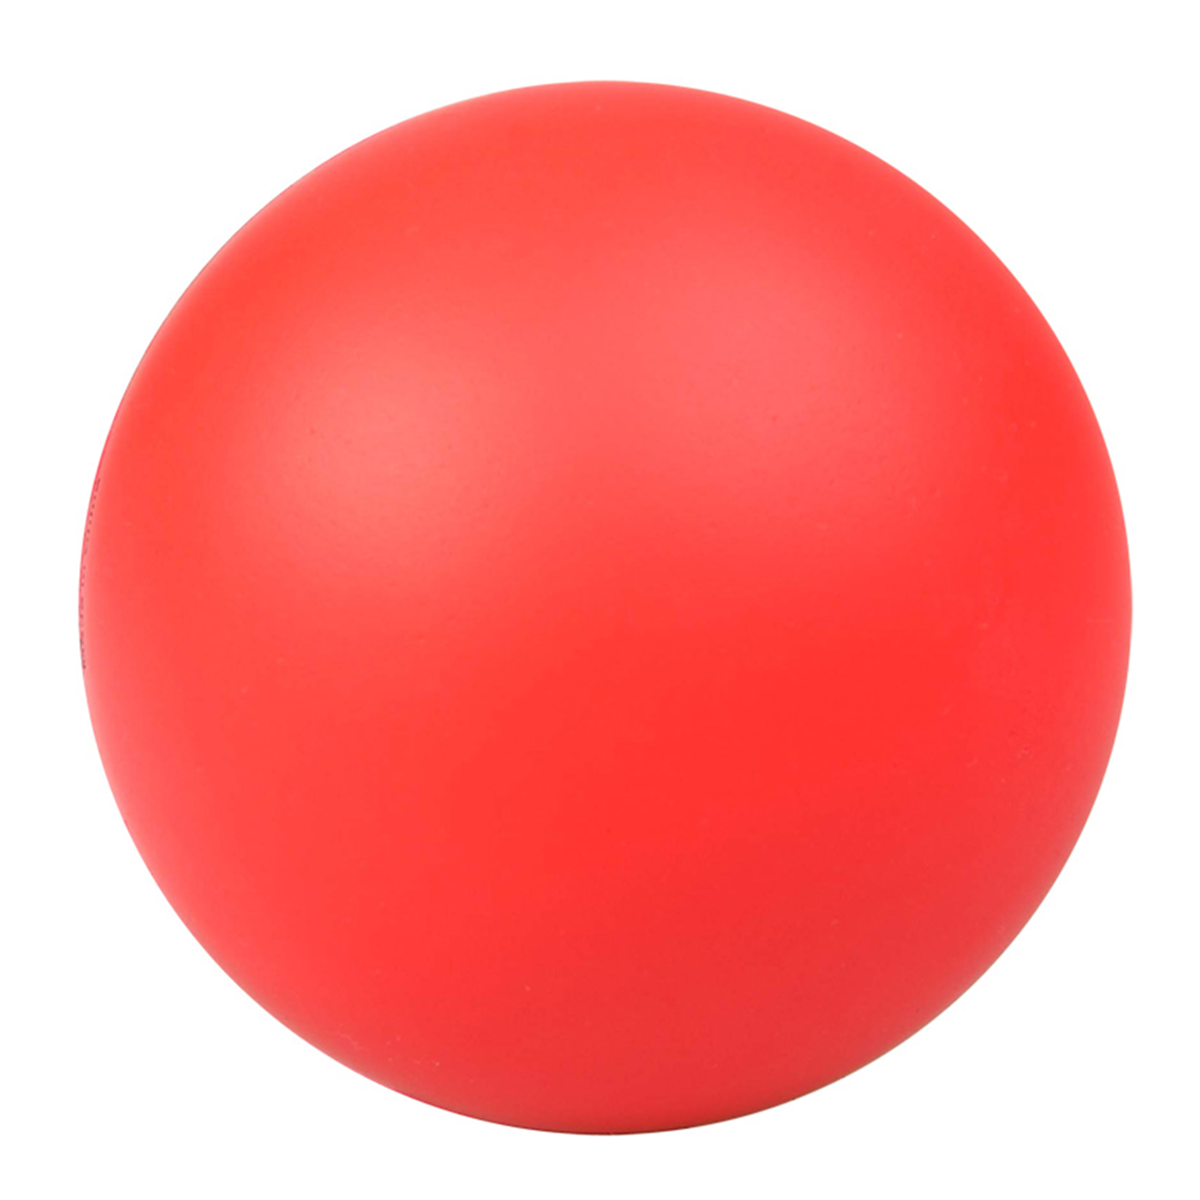 Round stress ball reliever mines press